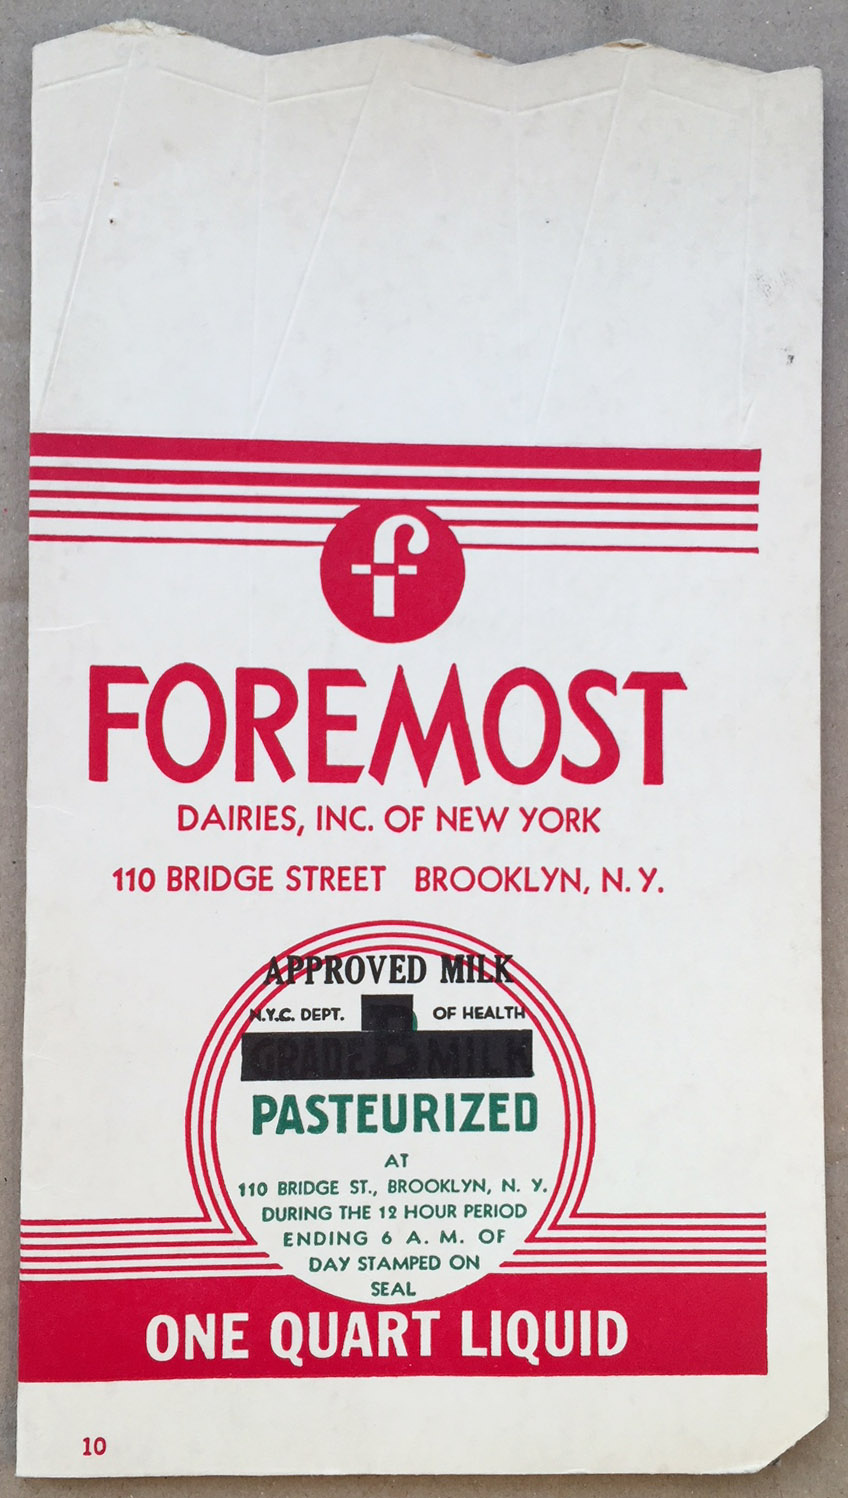 Cardboard milk carton, 1940. Department of Health collection, NYC Municipal Archives.